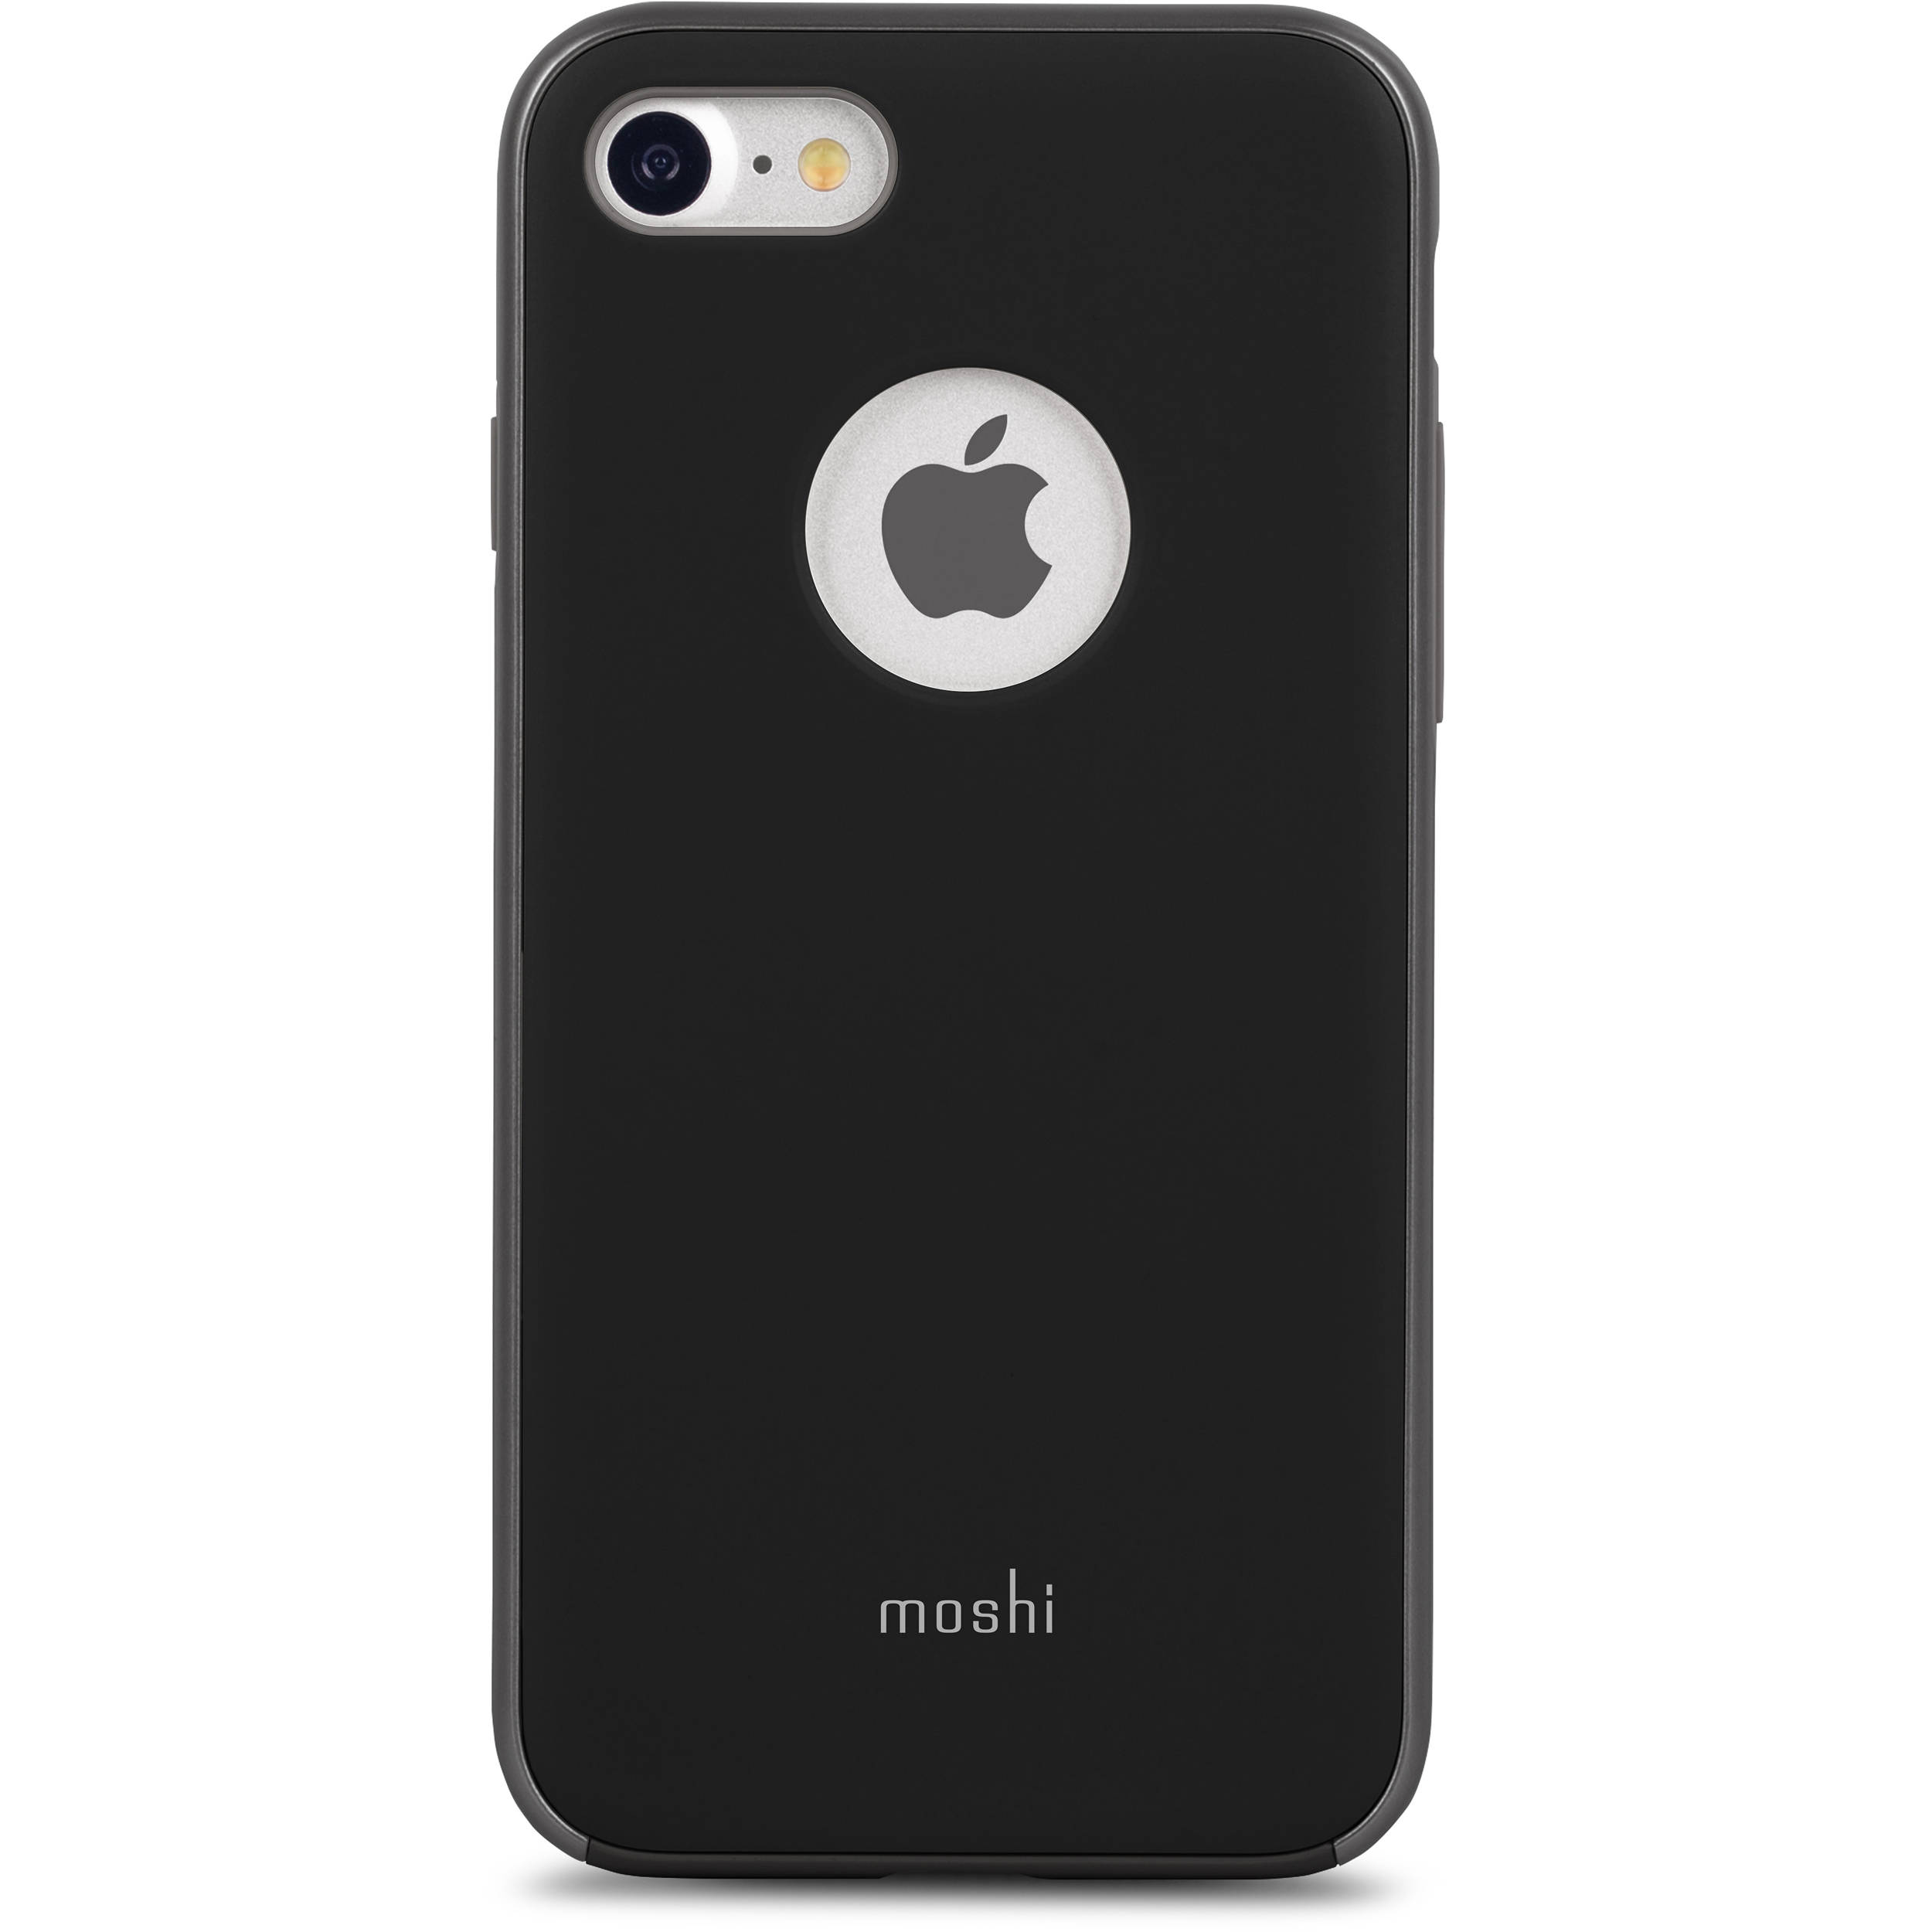 moshi iphone case moshi iglaze for iphone 7 black 99mo088002 b amp h photo 7367